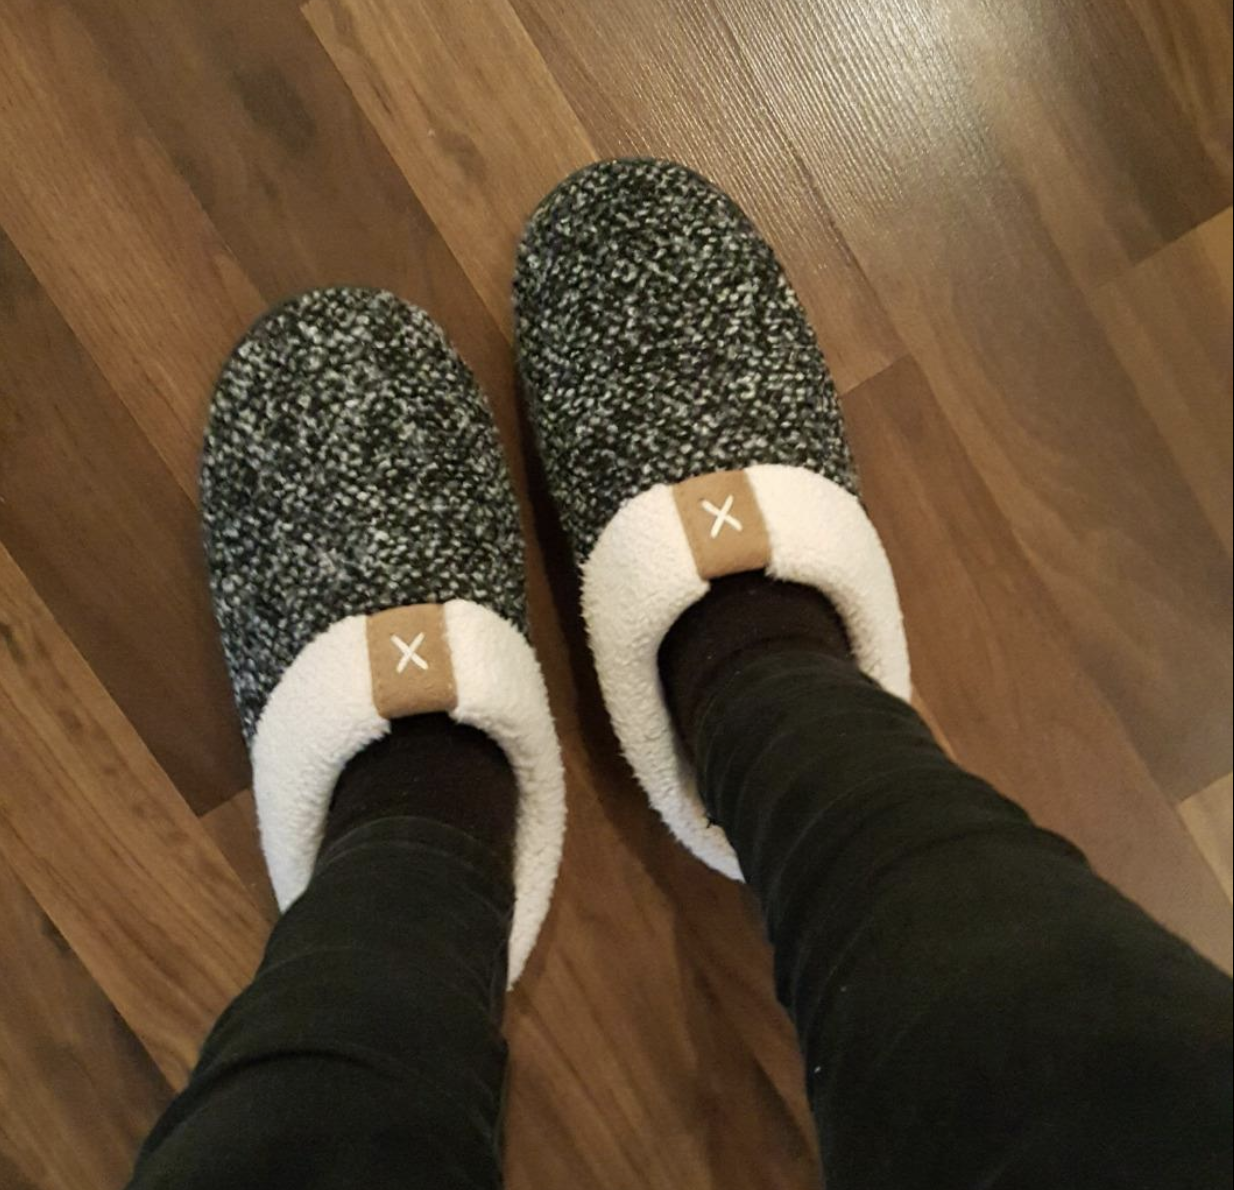 Reviewer in slip on white and black marled slippers with fleece-y lining